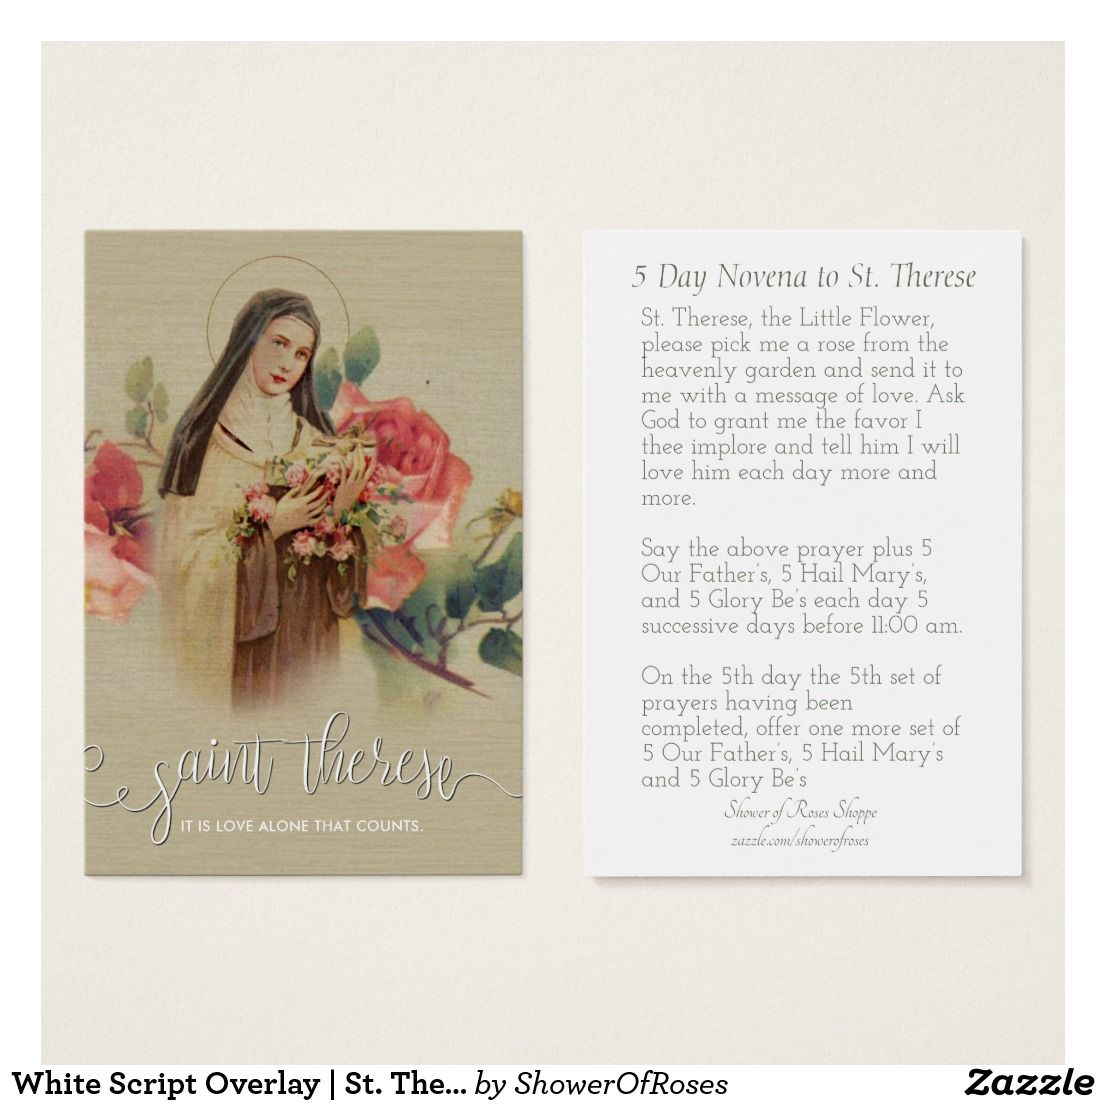 White Script Overlay St. Therese Roses Holy Card